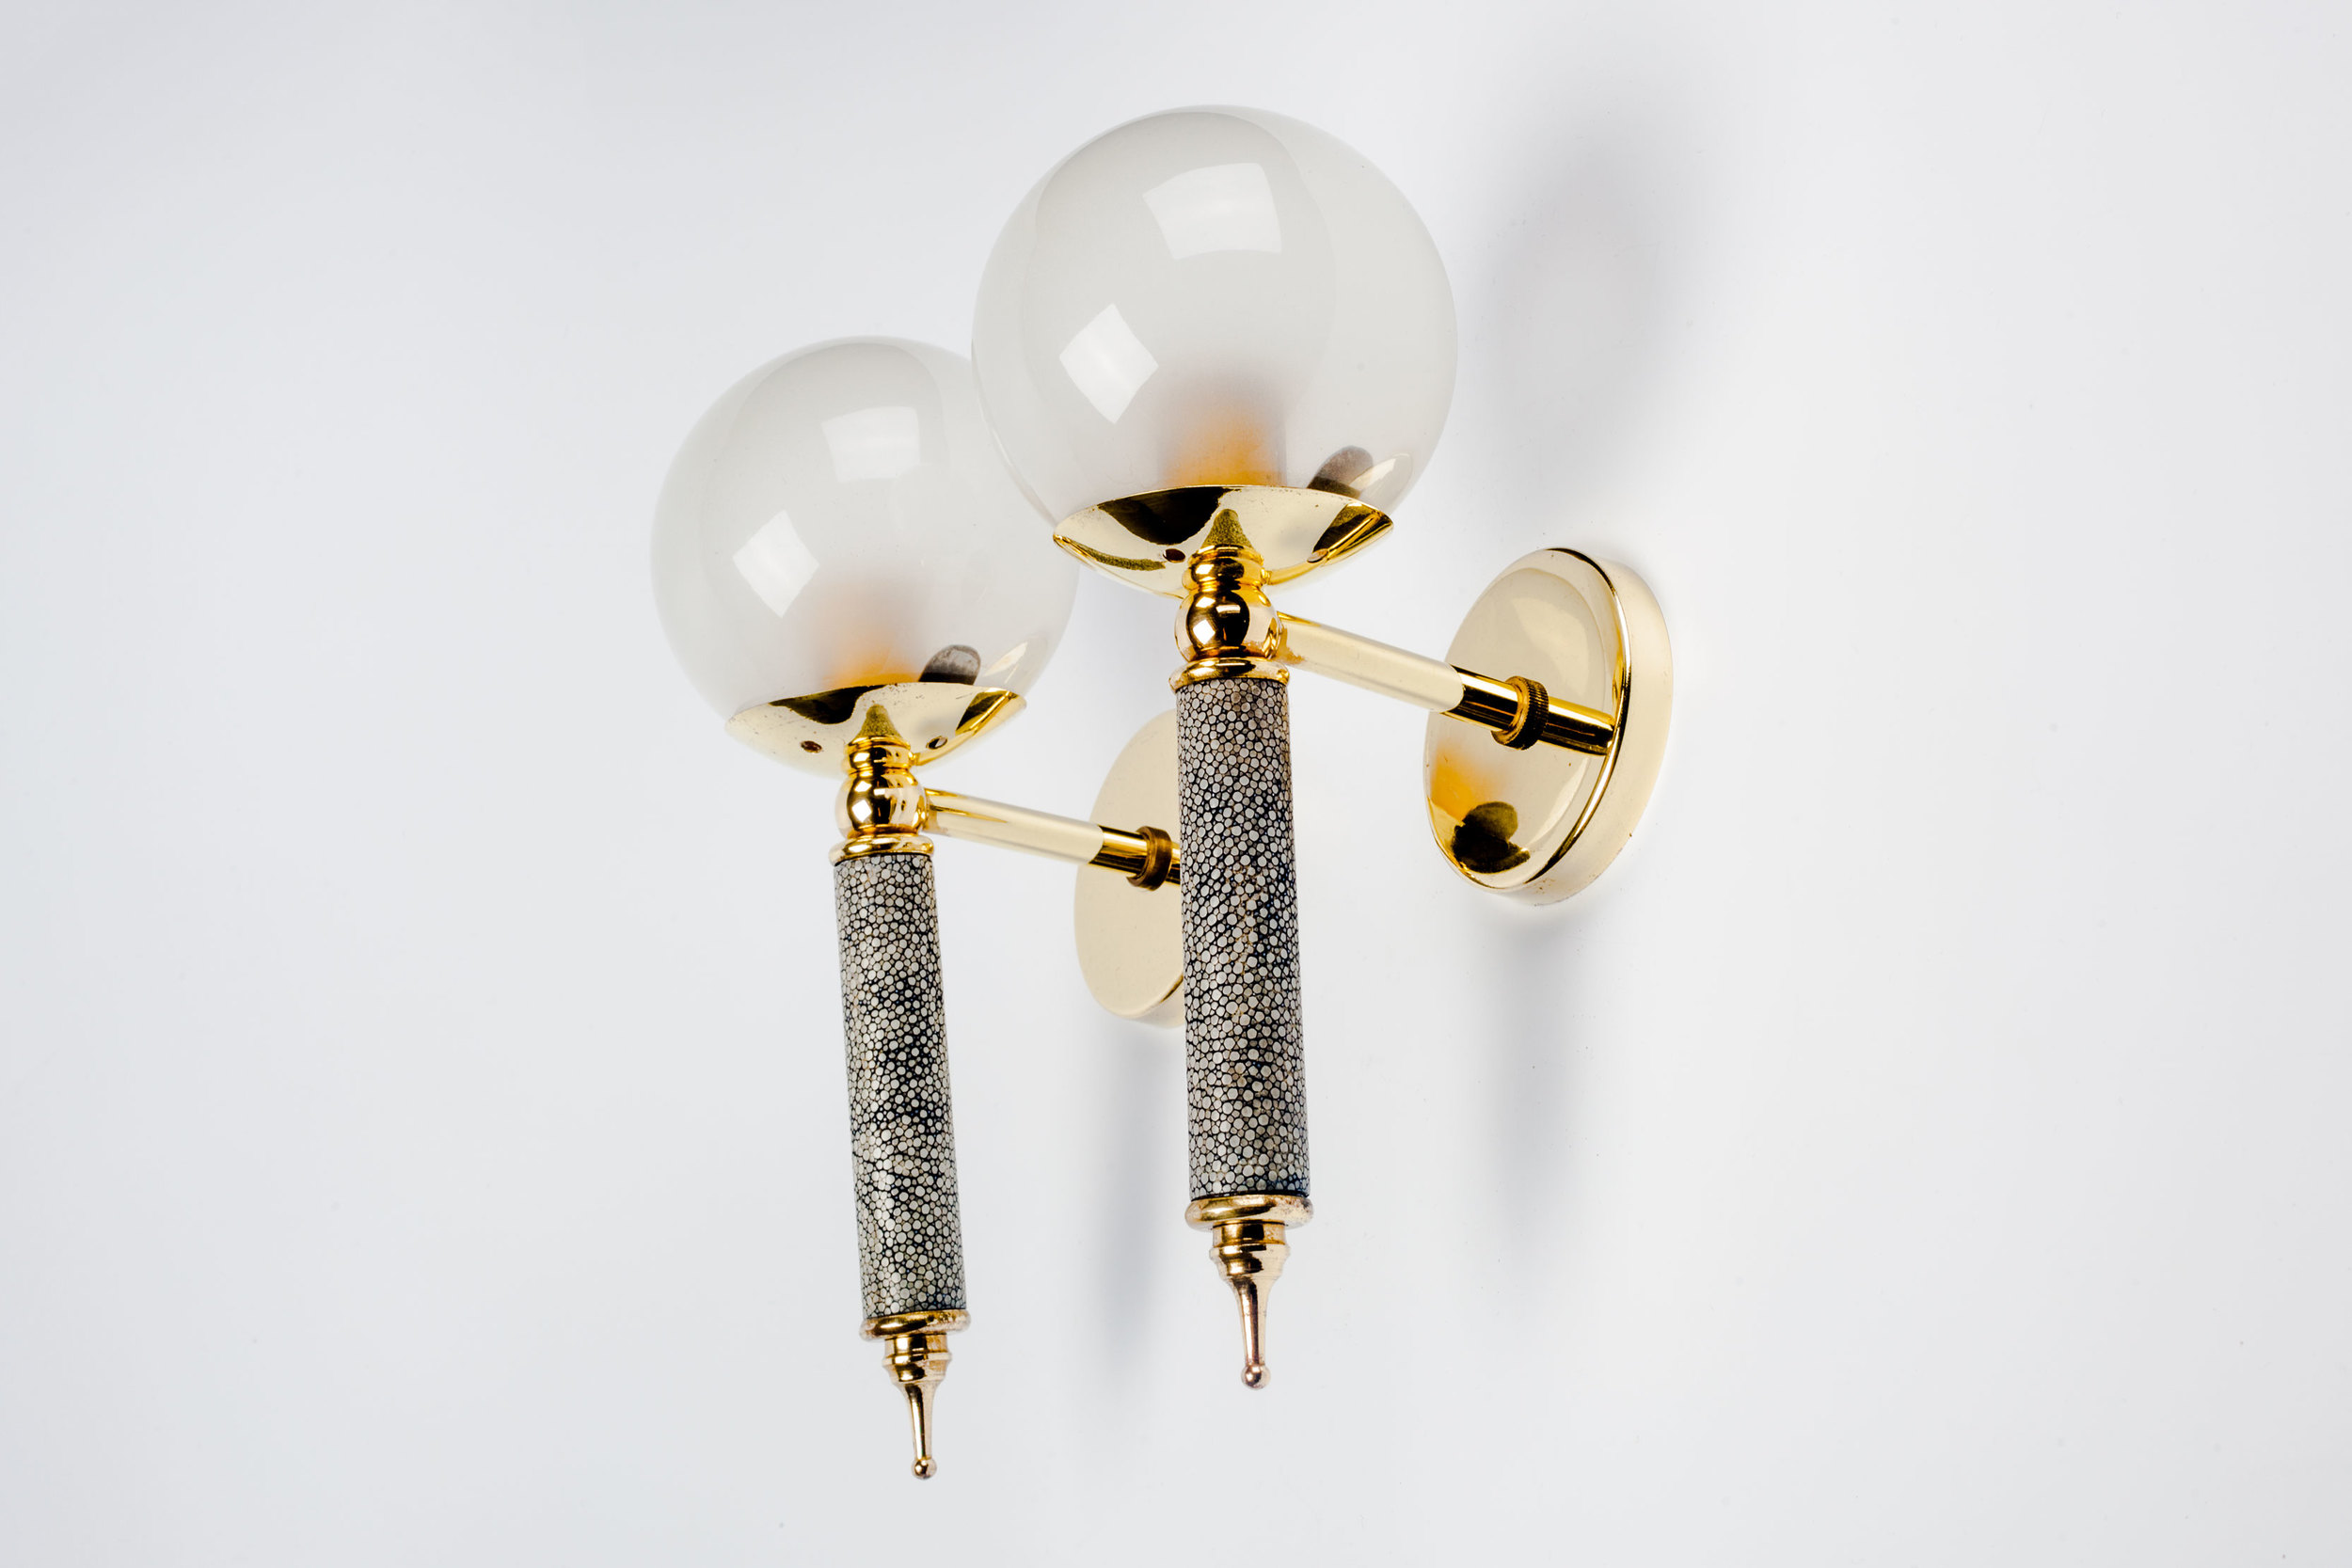 Sconces in Shagreen Glass and Brass, France 1950s